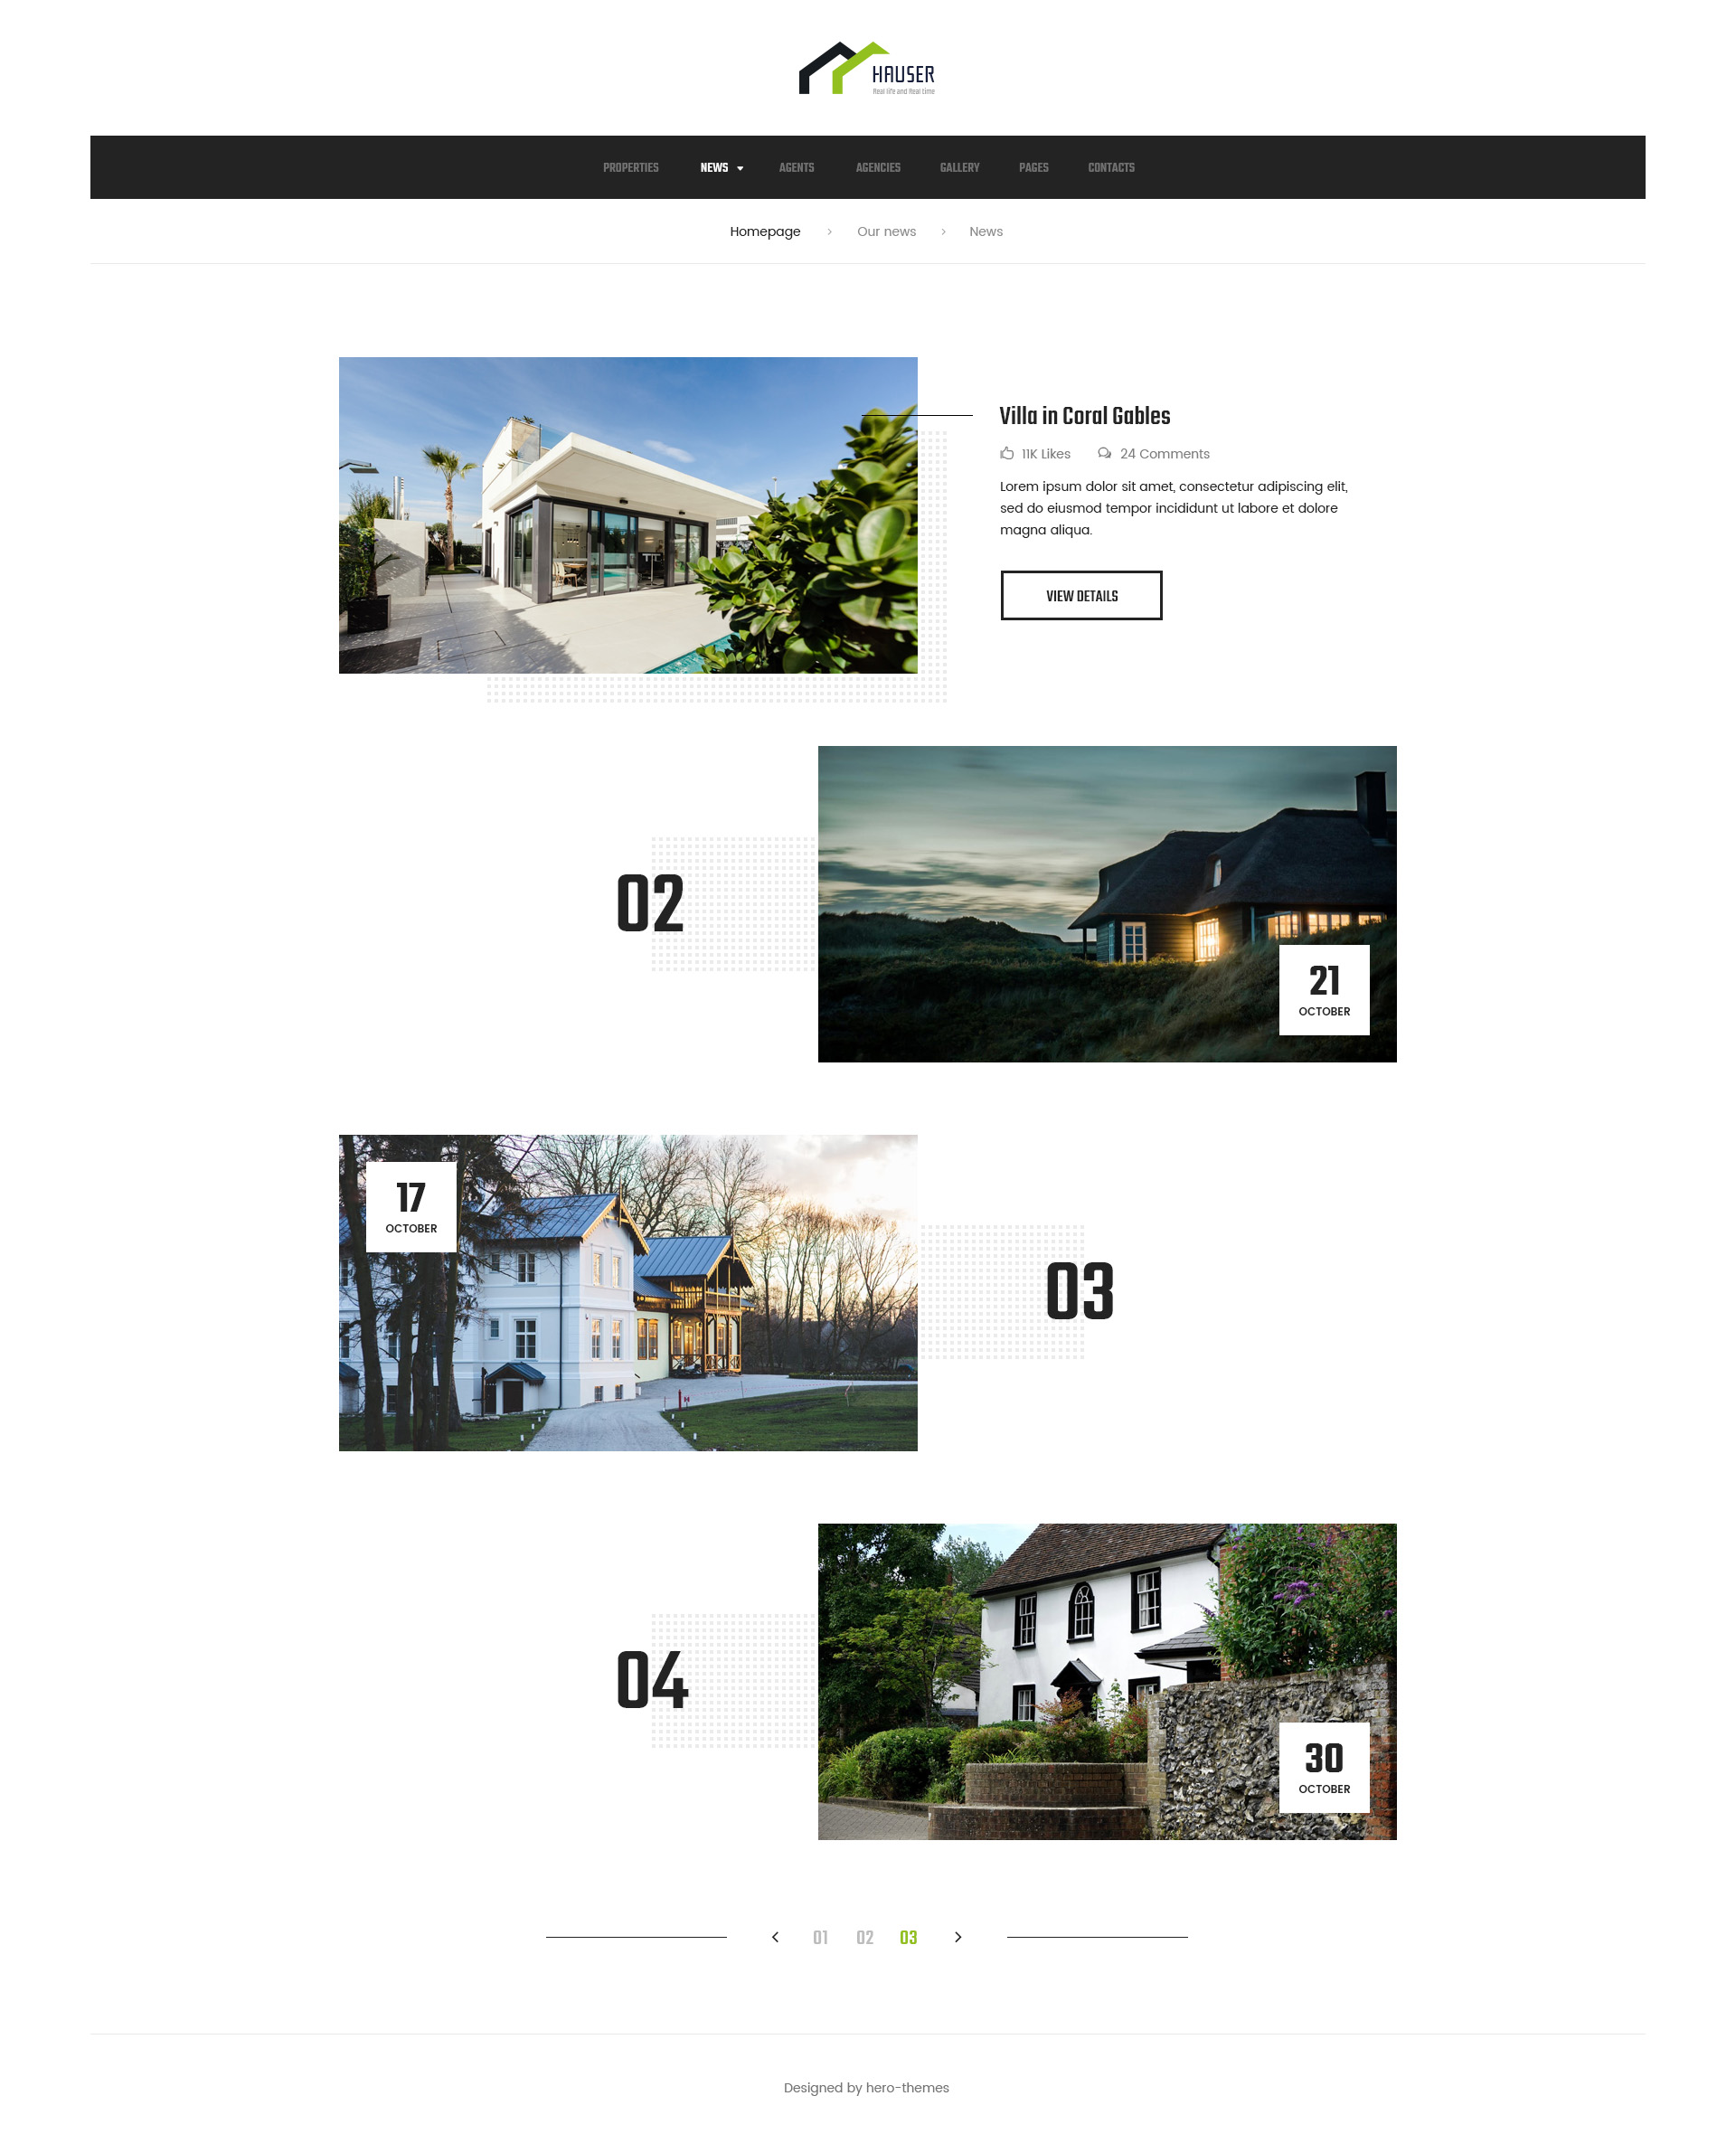 Häuser 24 Hauser Real Estate Psd Template